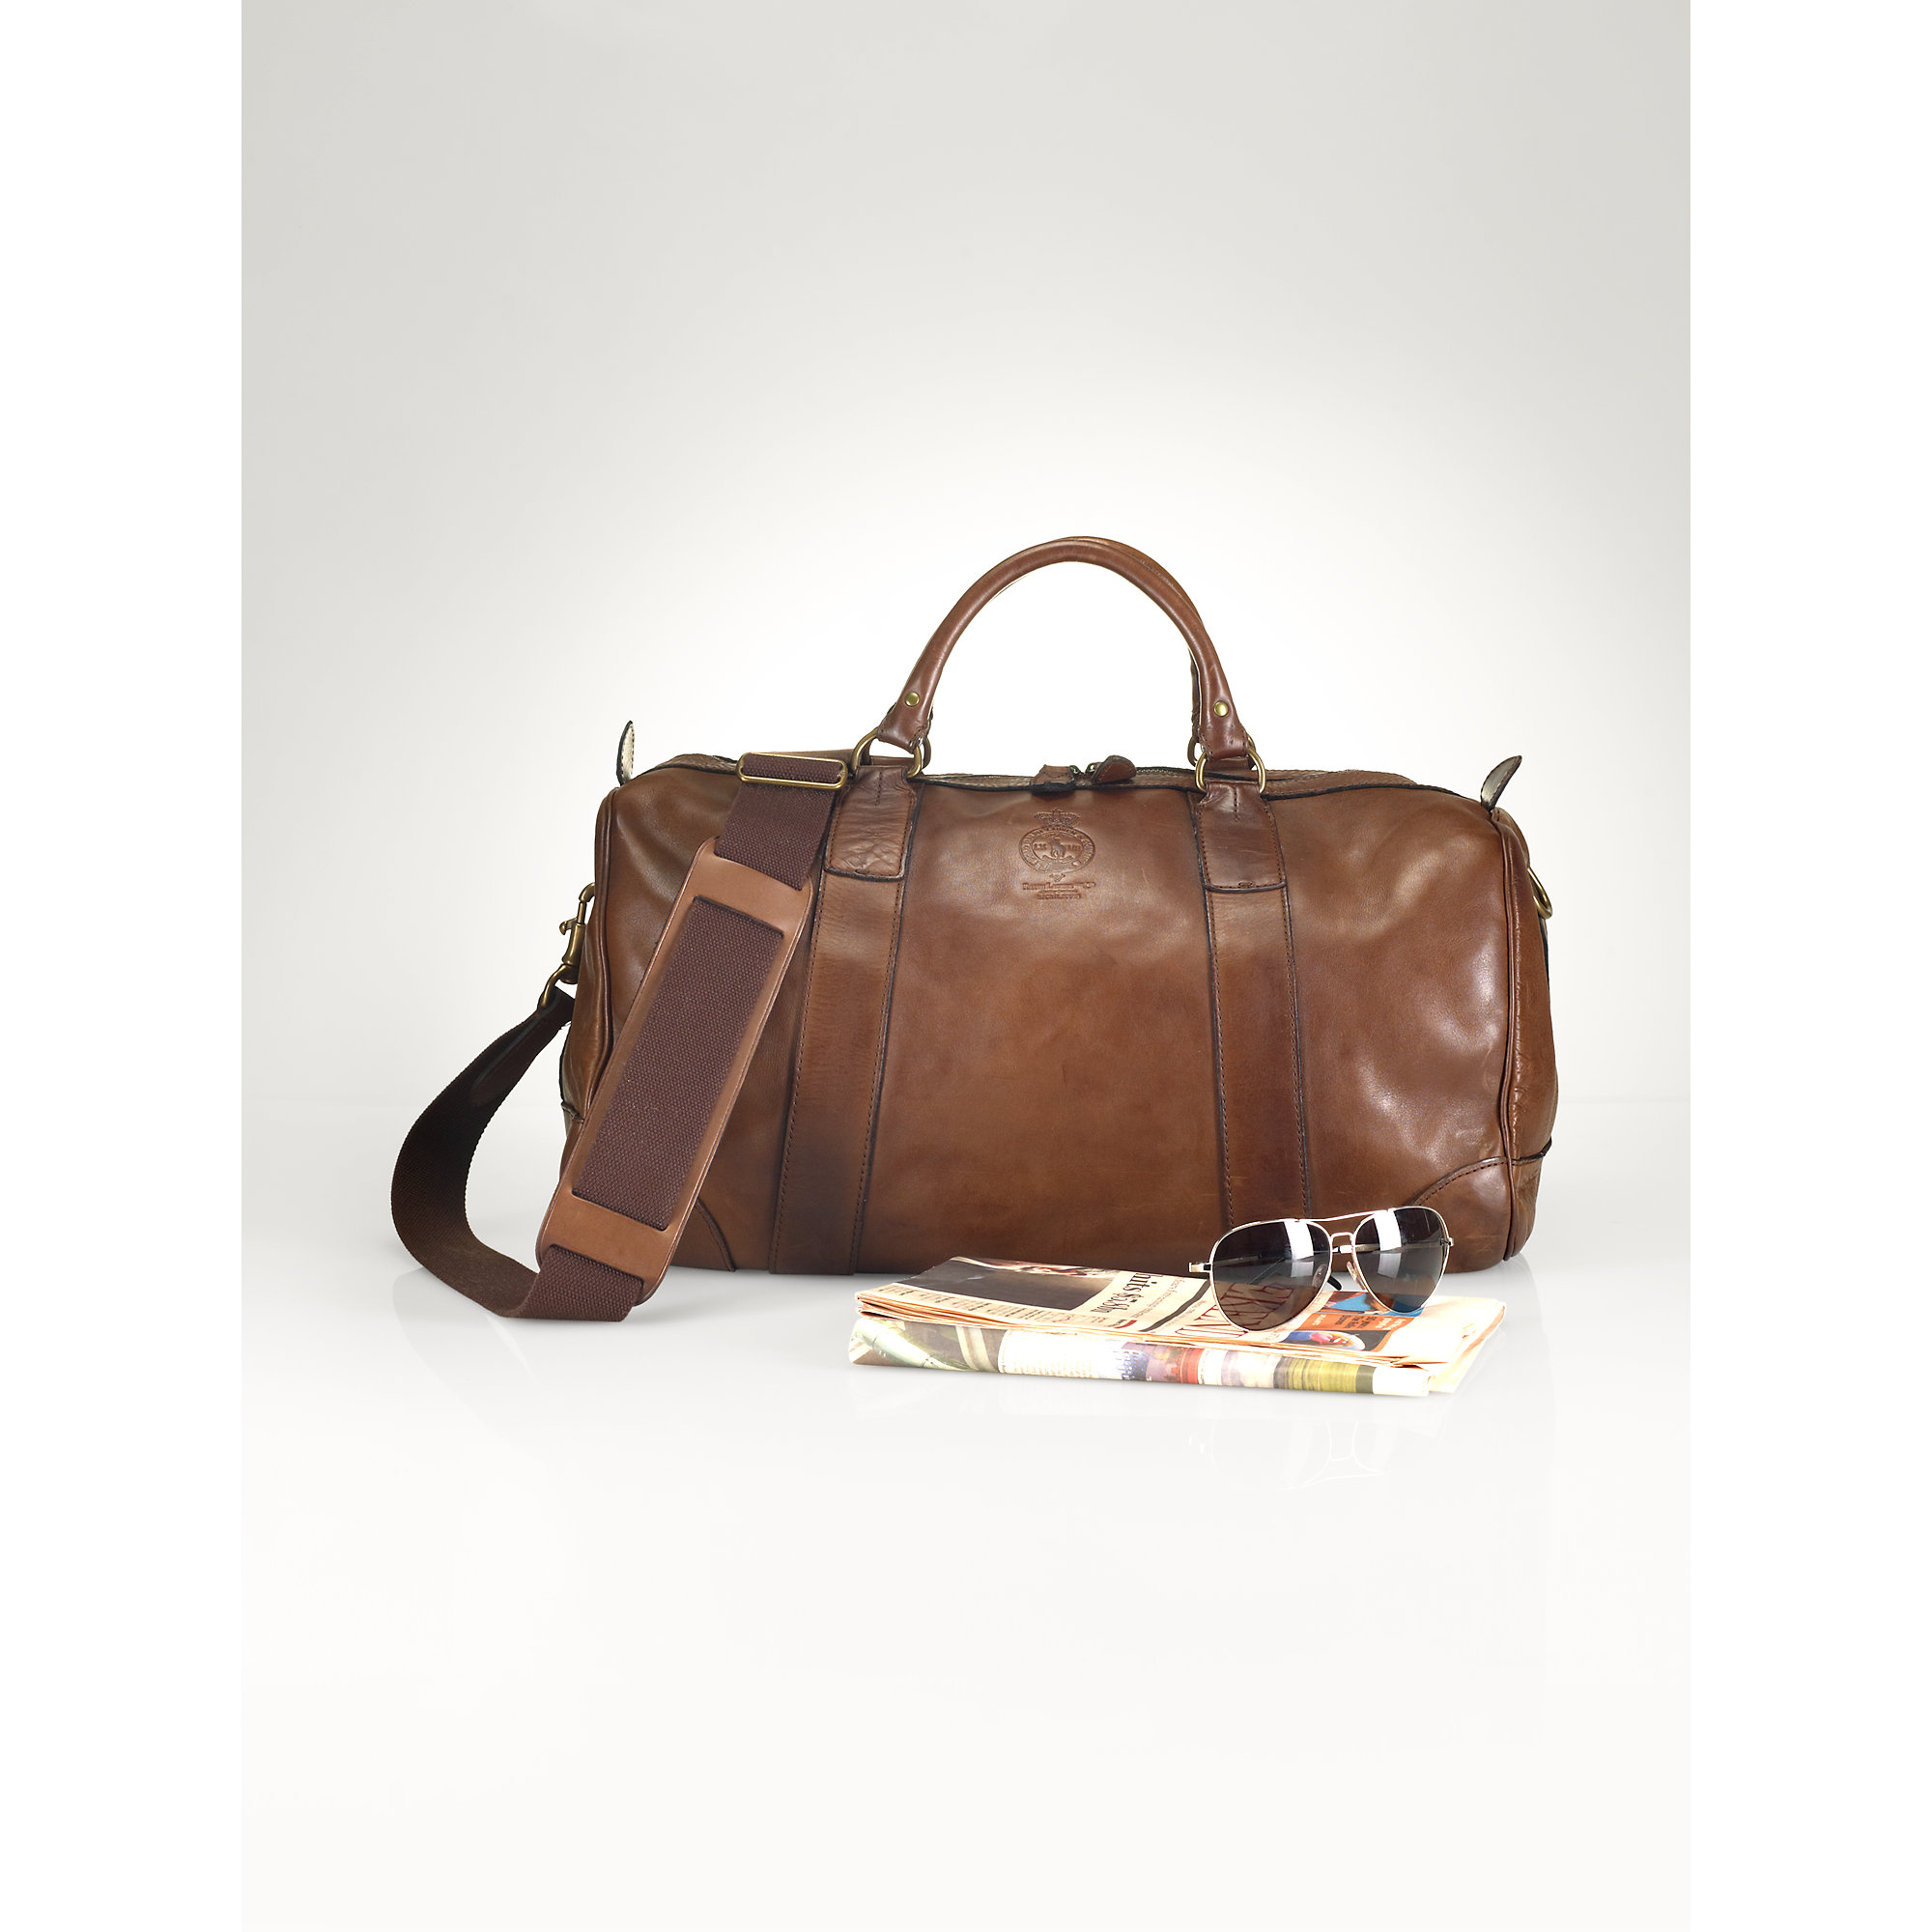 ... usa lyst polo ralph lauren leather duffel bag in brown for men 3ad1a  cee0d b3b694dd05644